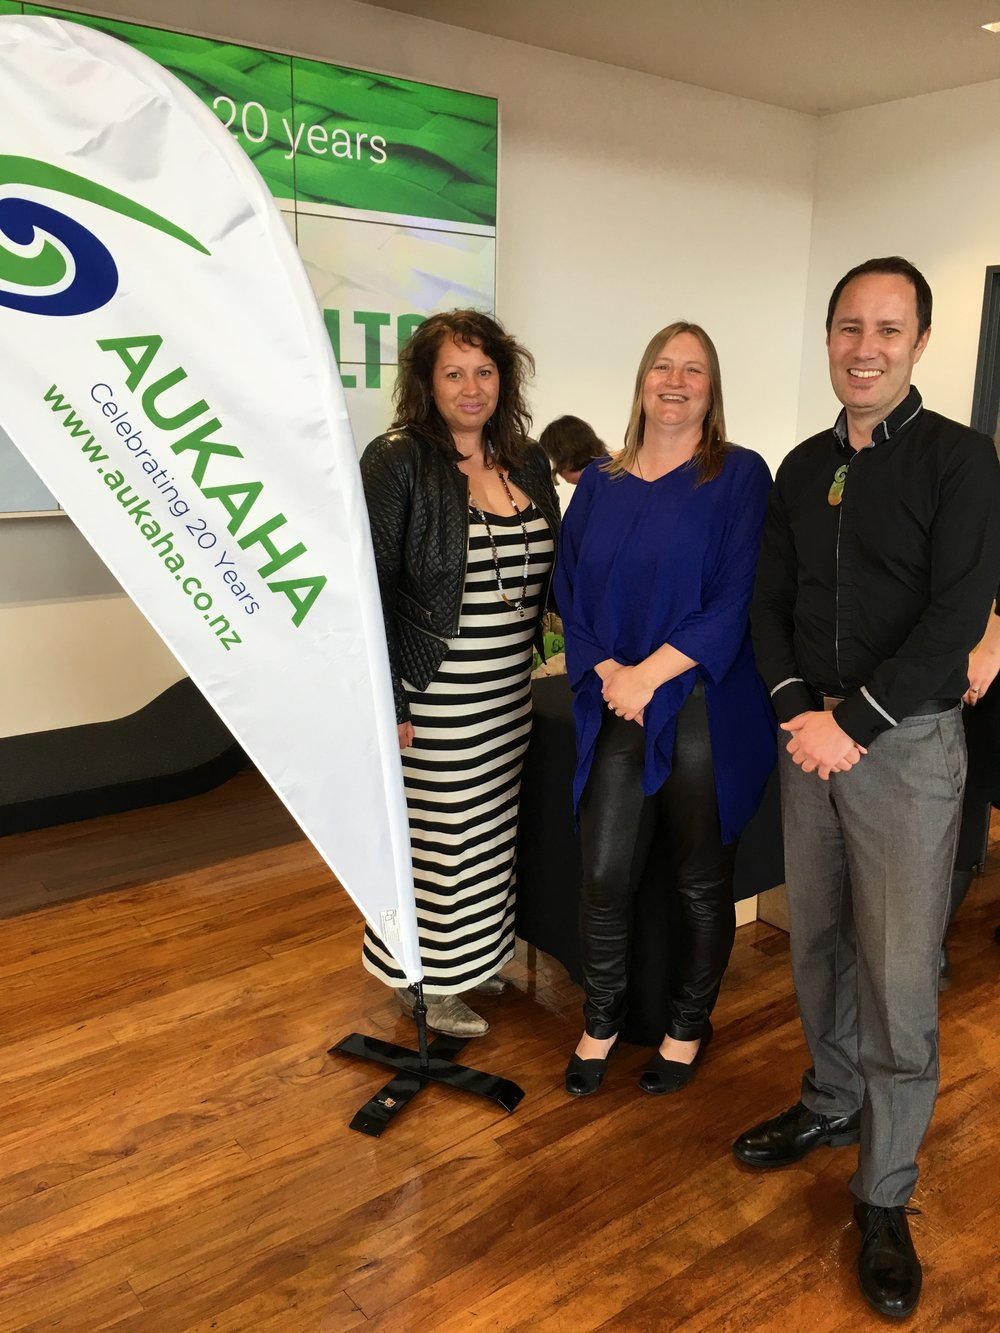 Kara Edwards and Maria Bartlett (Te Runanga o Ngai Tahu) with Chris Rosenbrock, General Manager KTKO